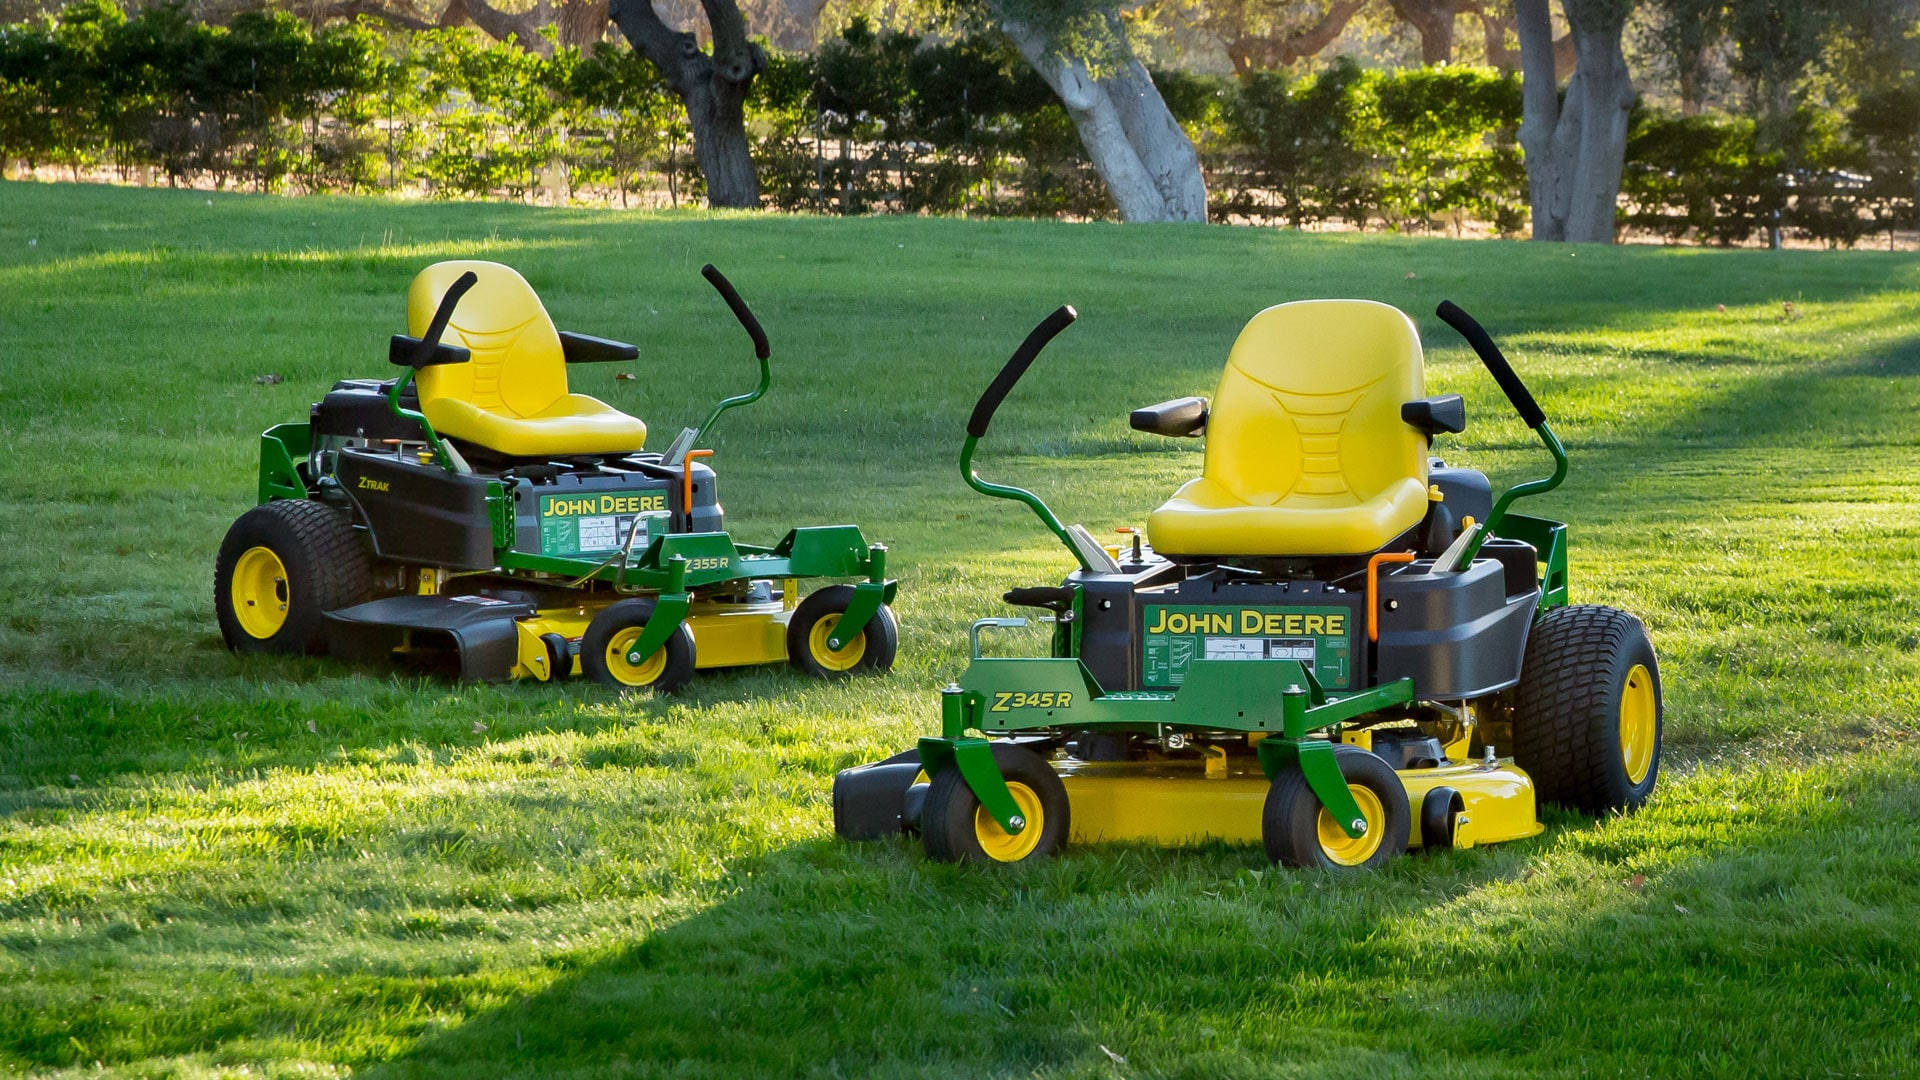 The ZTrak Zero-Turn Mowers are great for any residential mowing needs.